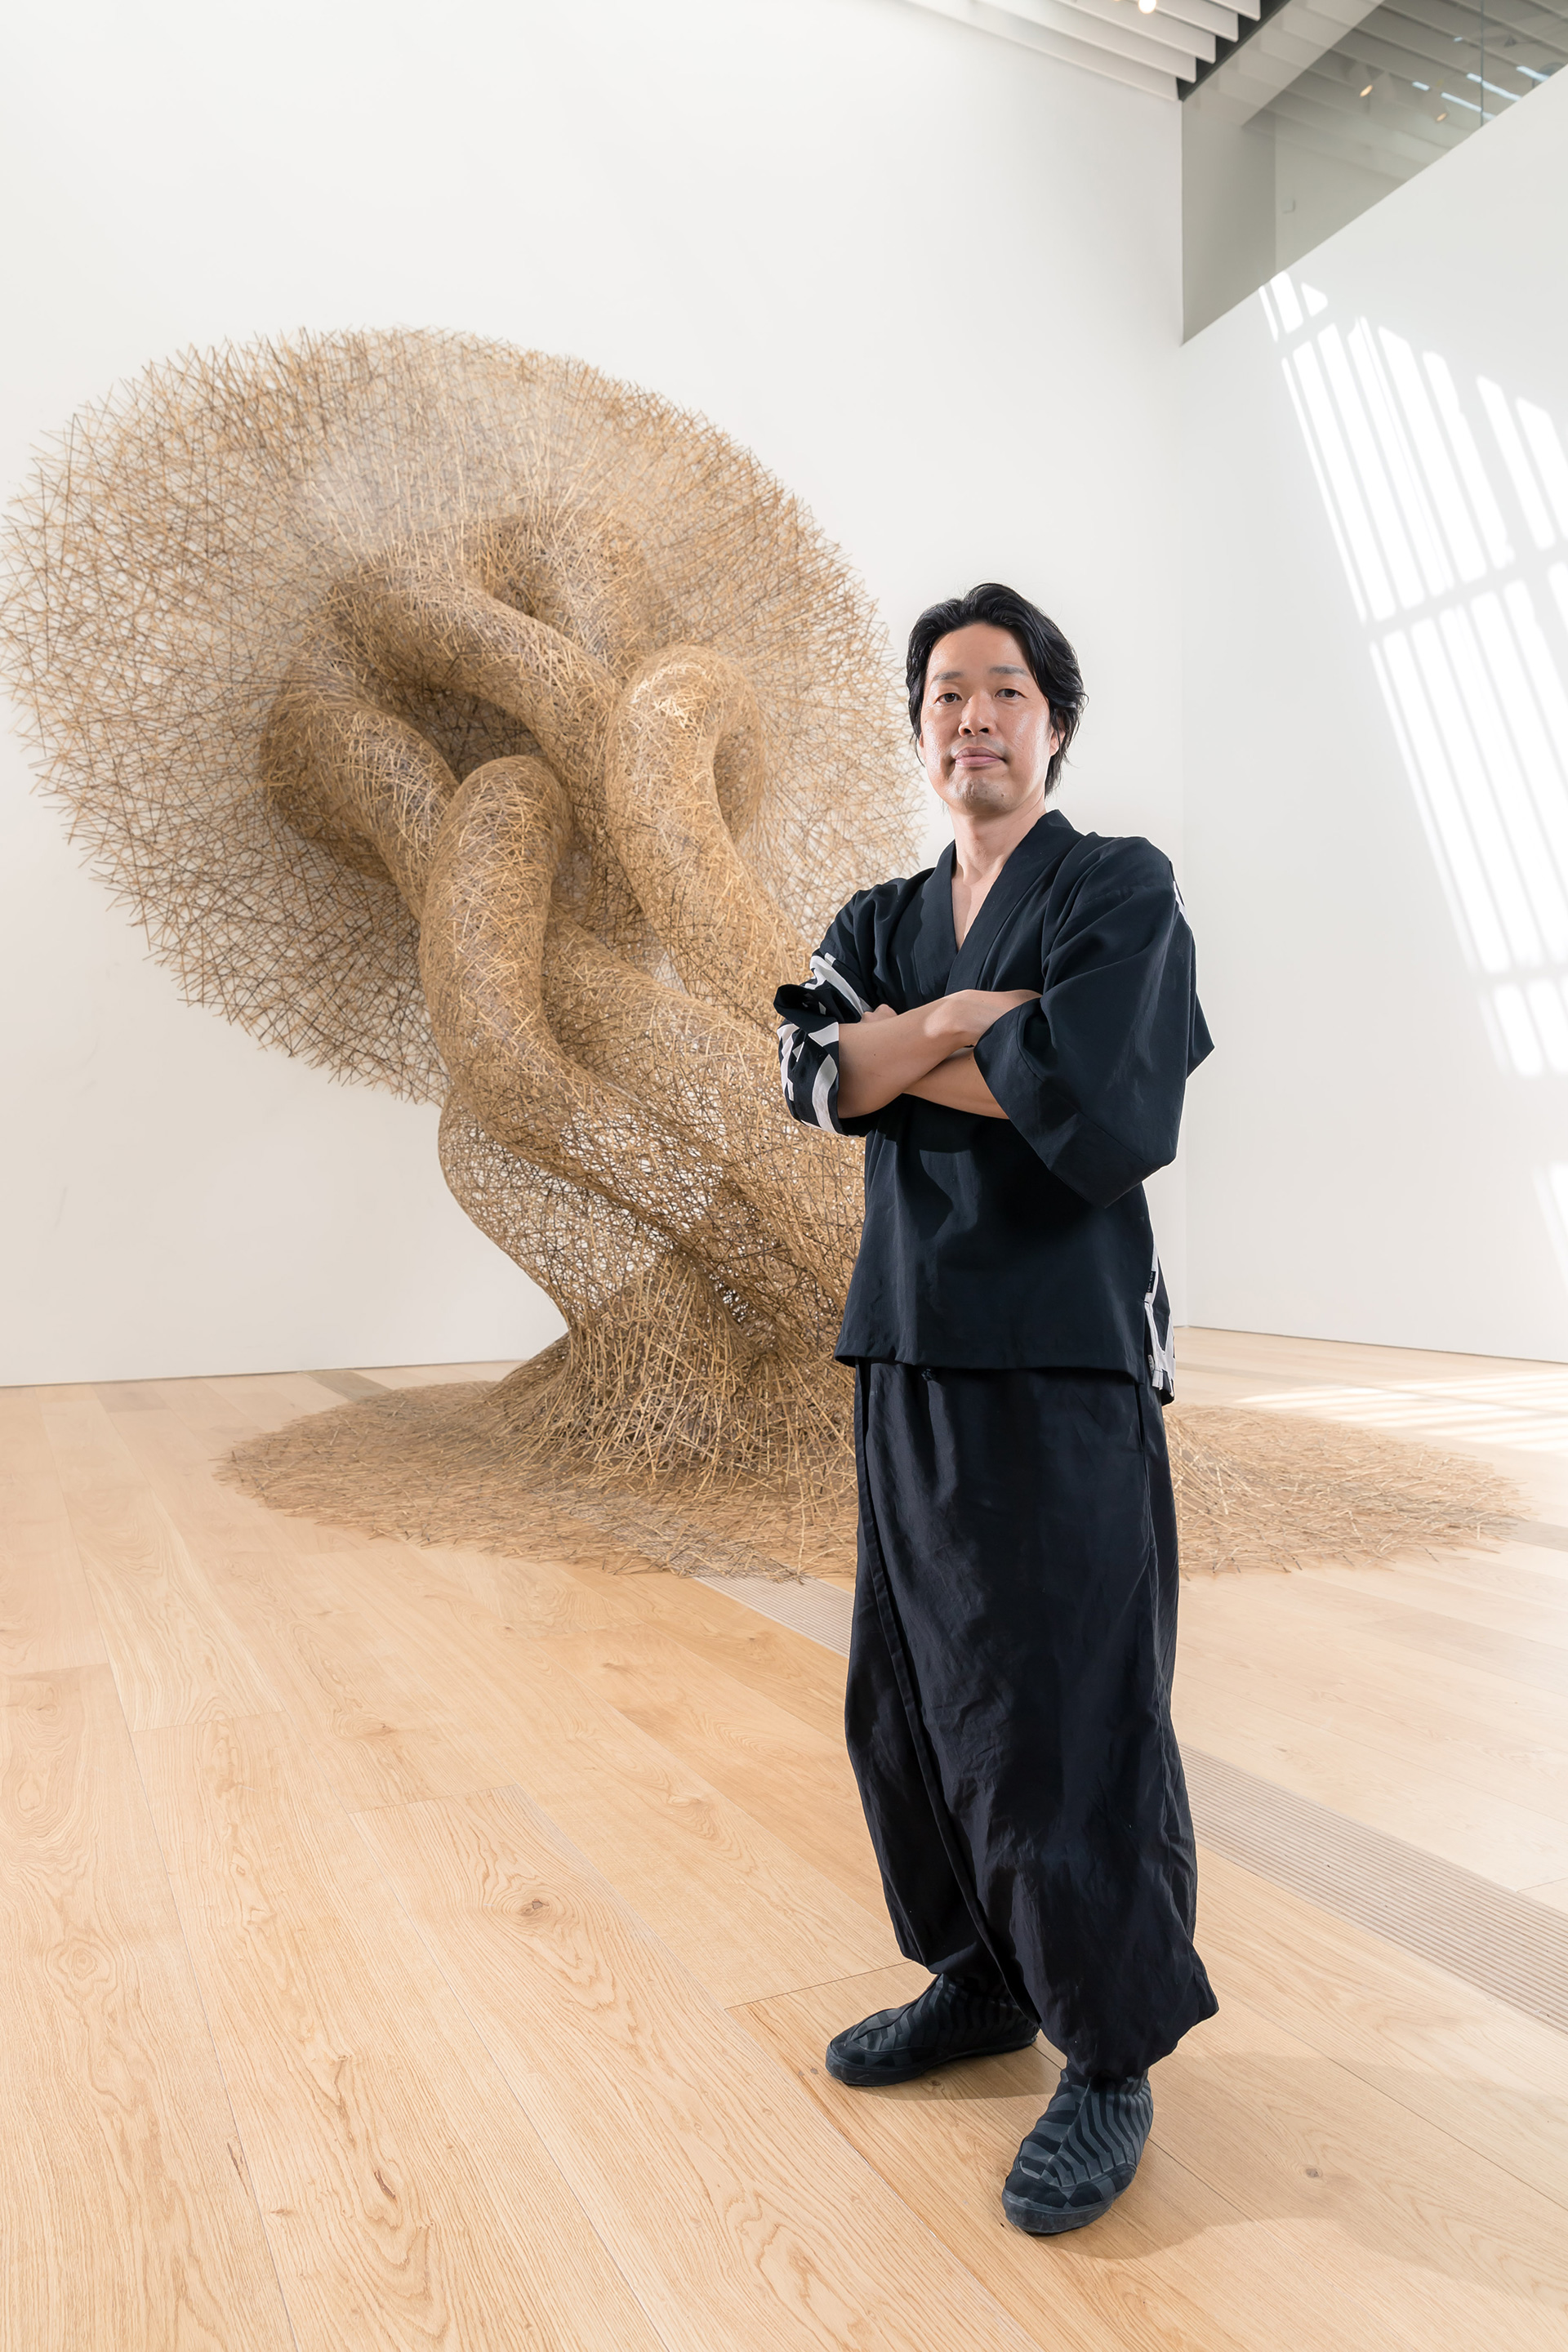 Tanabe Chikuunsai IV photographed with his bamboo installation, exhibited at OMM | Odunpazari Modern Museum| Kengo Kuma and Associates | STIR